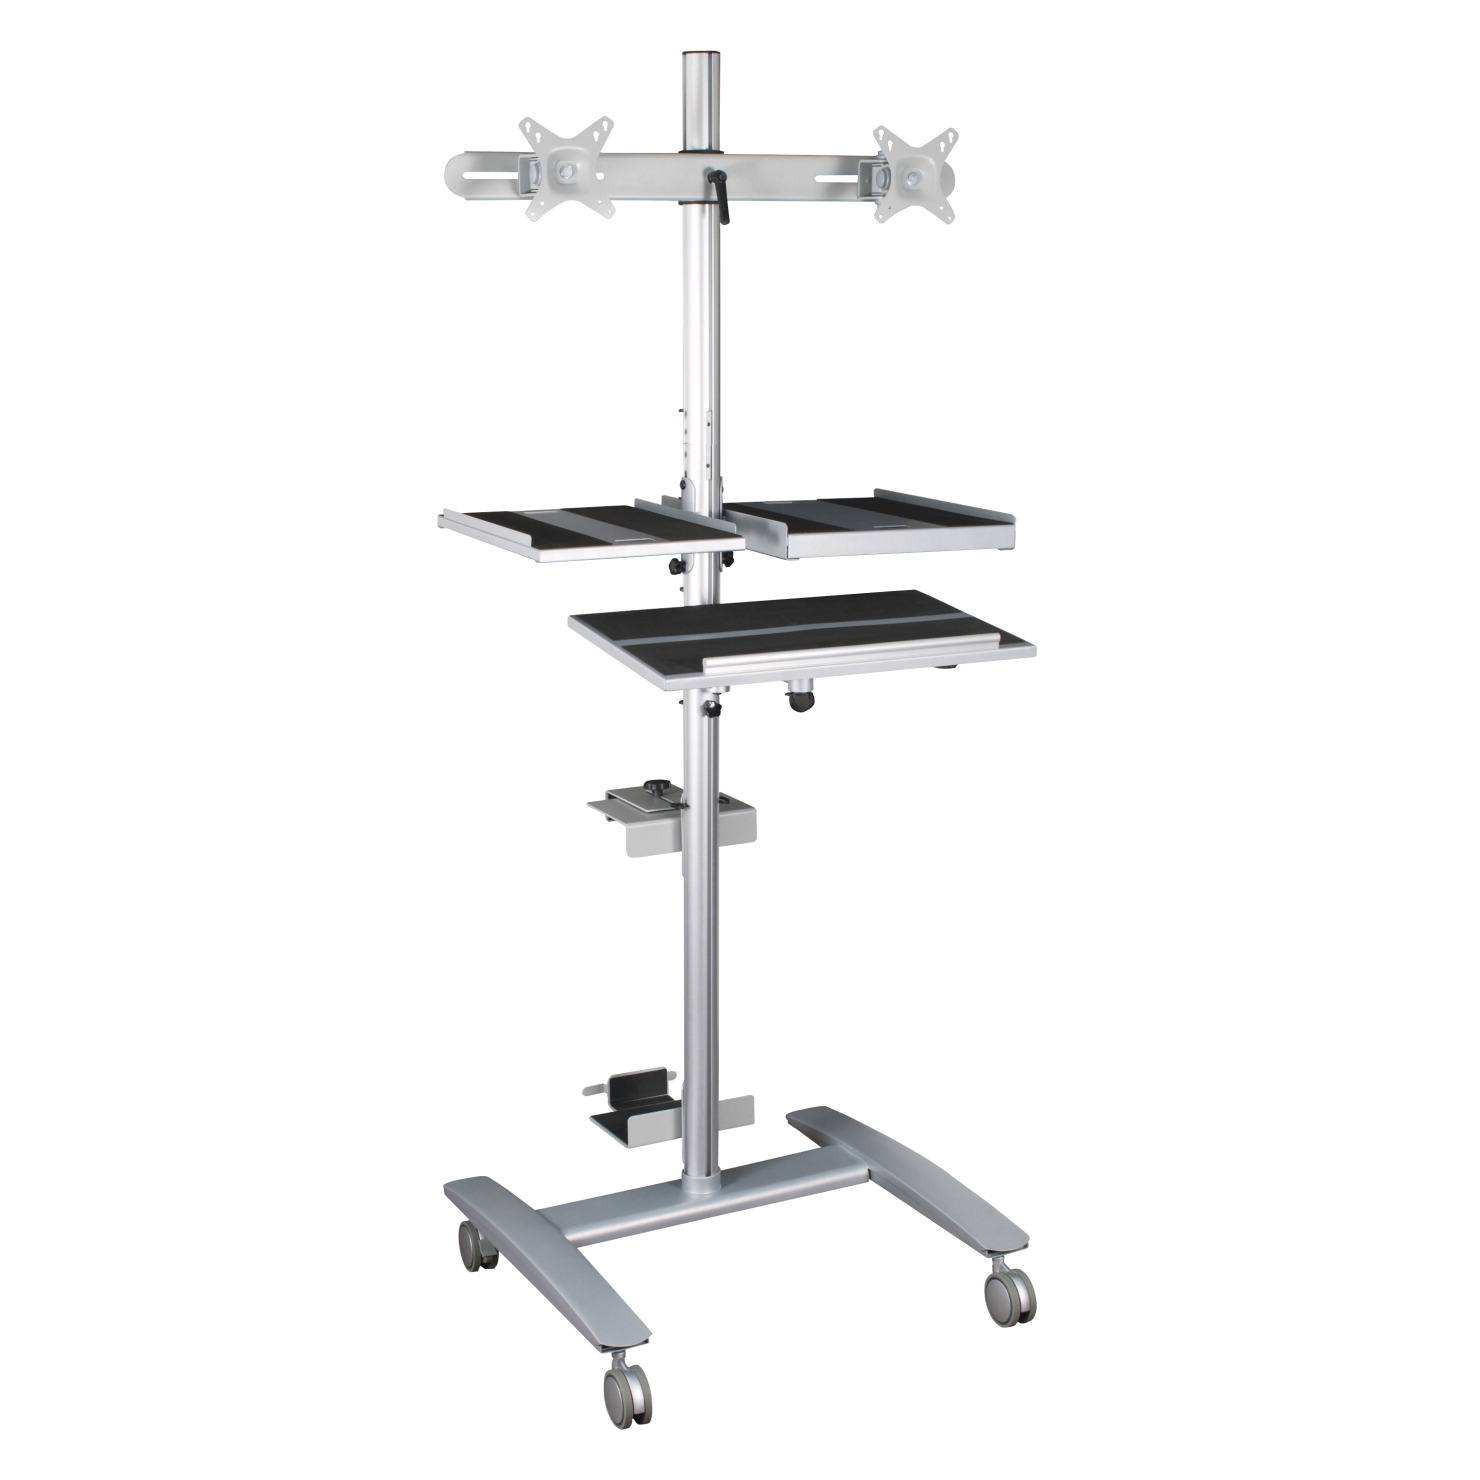 Best-Rite Beta Cart Sit-Stand Workstation 18-3/4 x 13-3/4 Inch Work Surface, 32 x 33 x 67 Inches